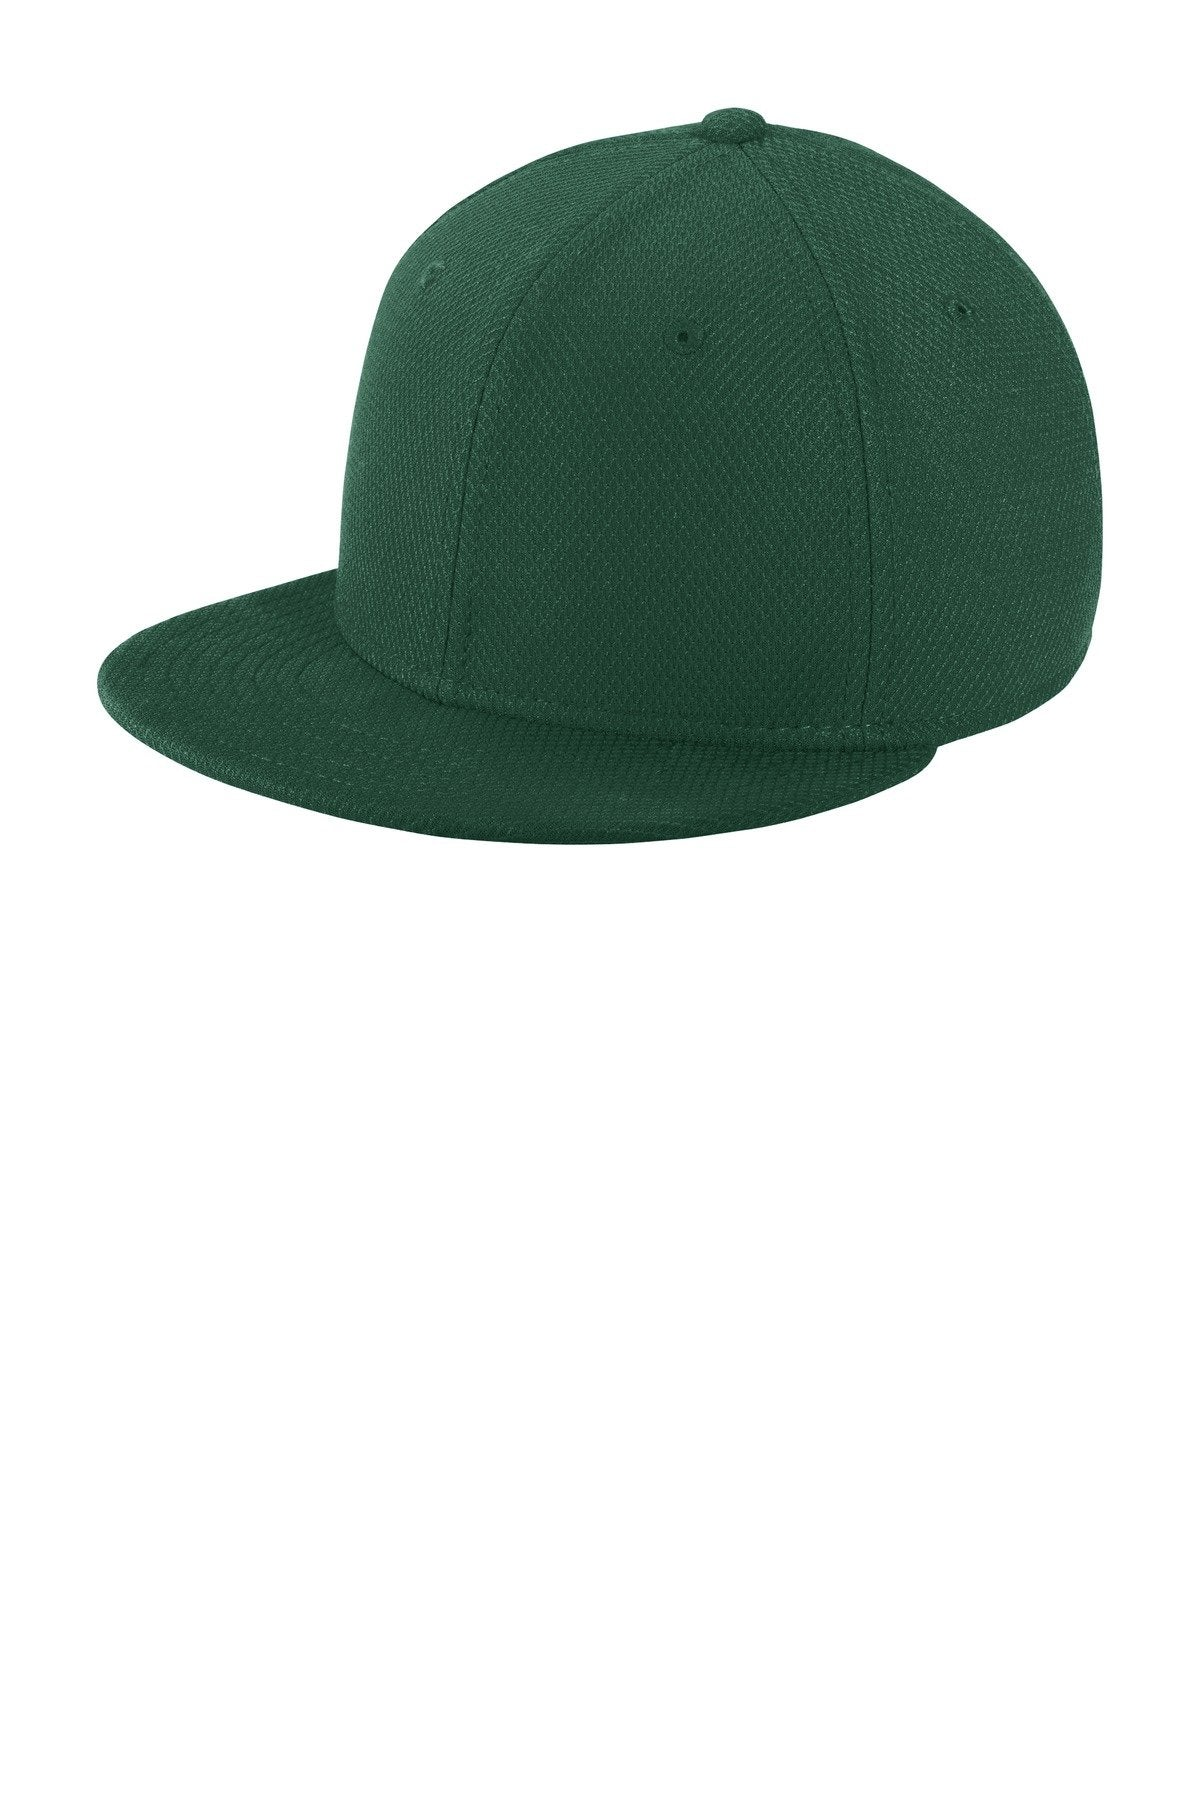 Dark Green - New Era NE304